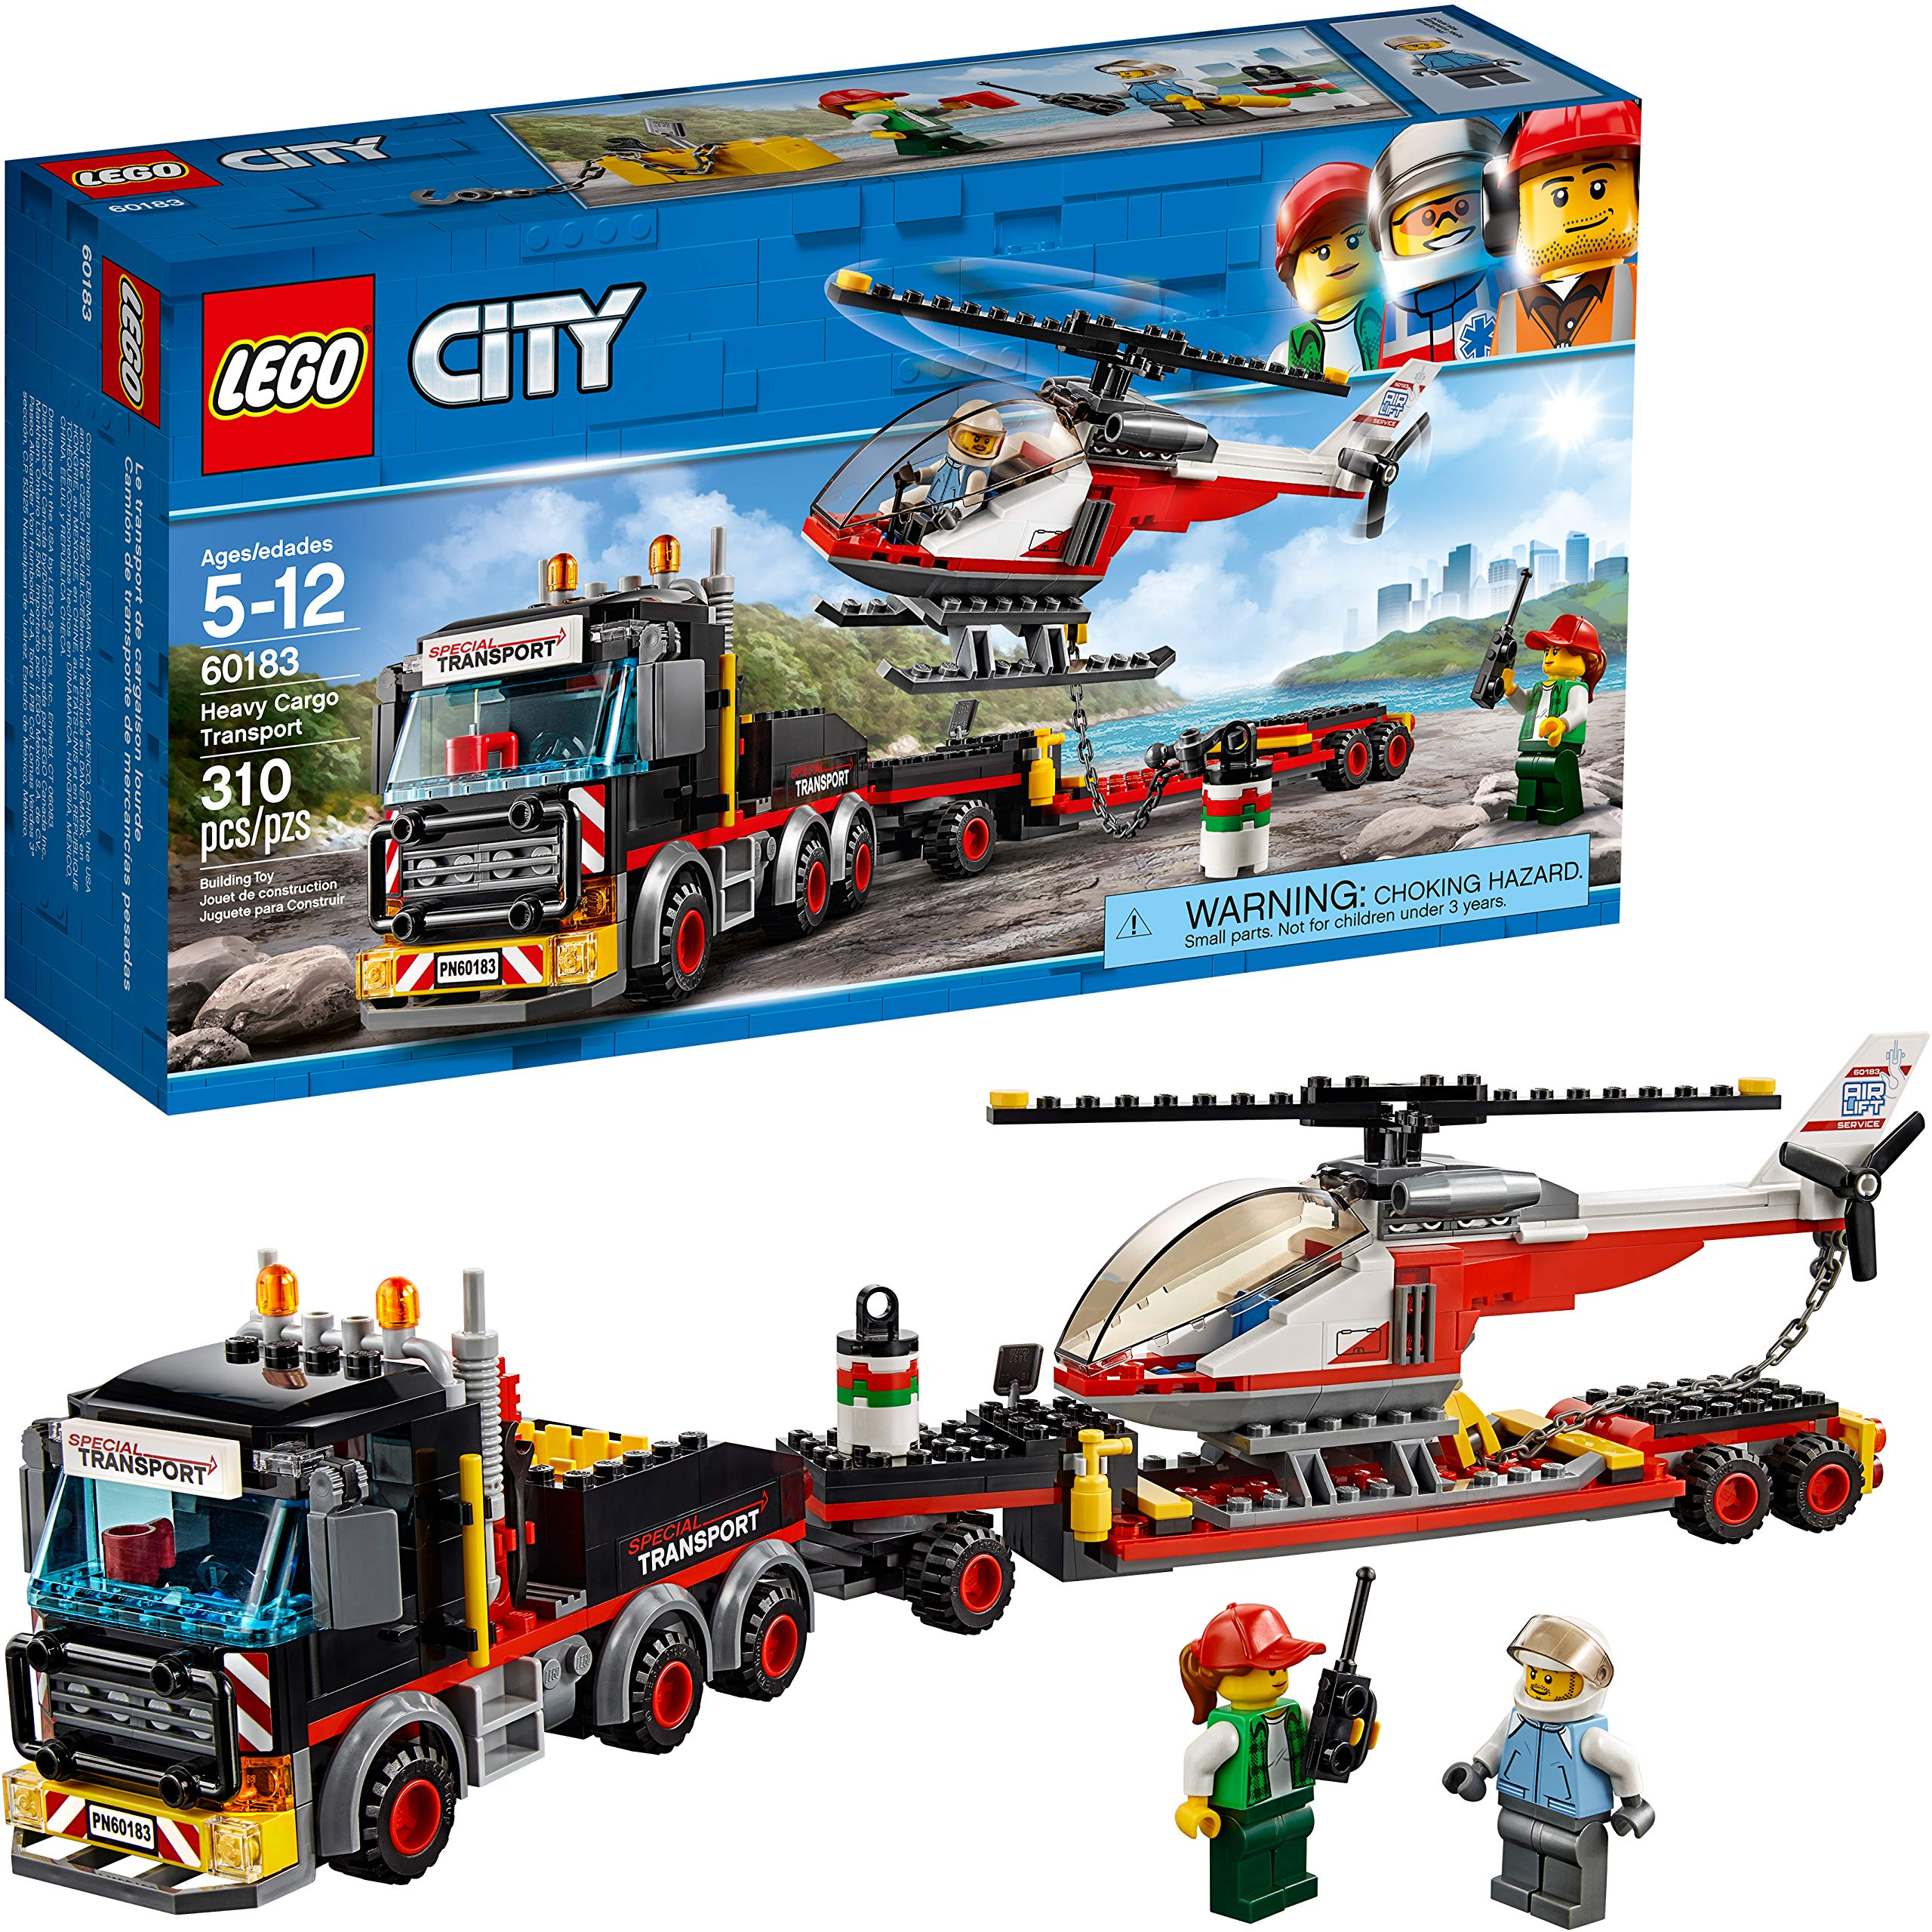 Lego City Heavy Cargo Transport 60183 Toy Truck Building Kit with Trailer, Toy Helicopter and Construction Minifigures for Creative Play (310 Pieces) by LEGO